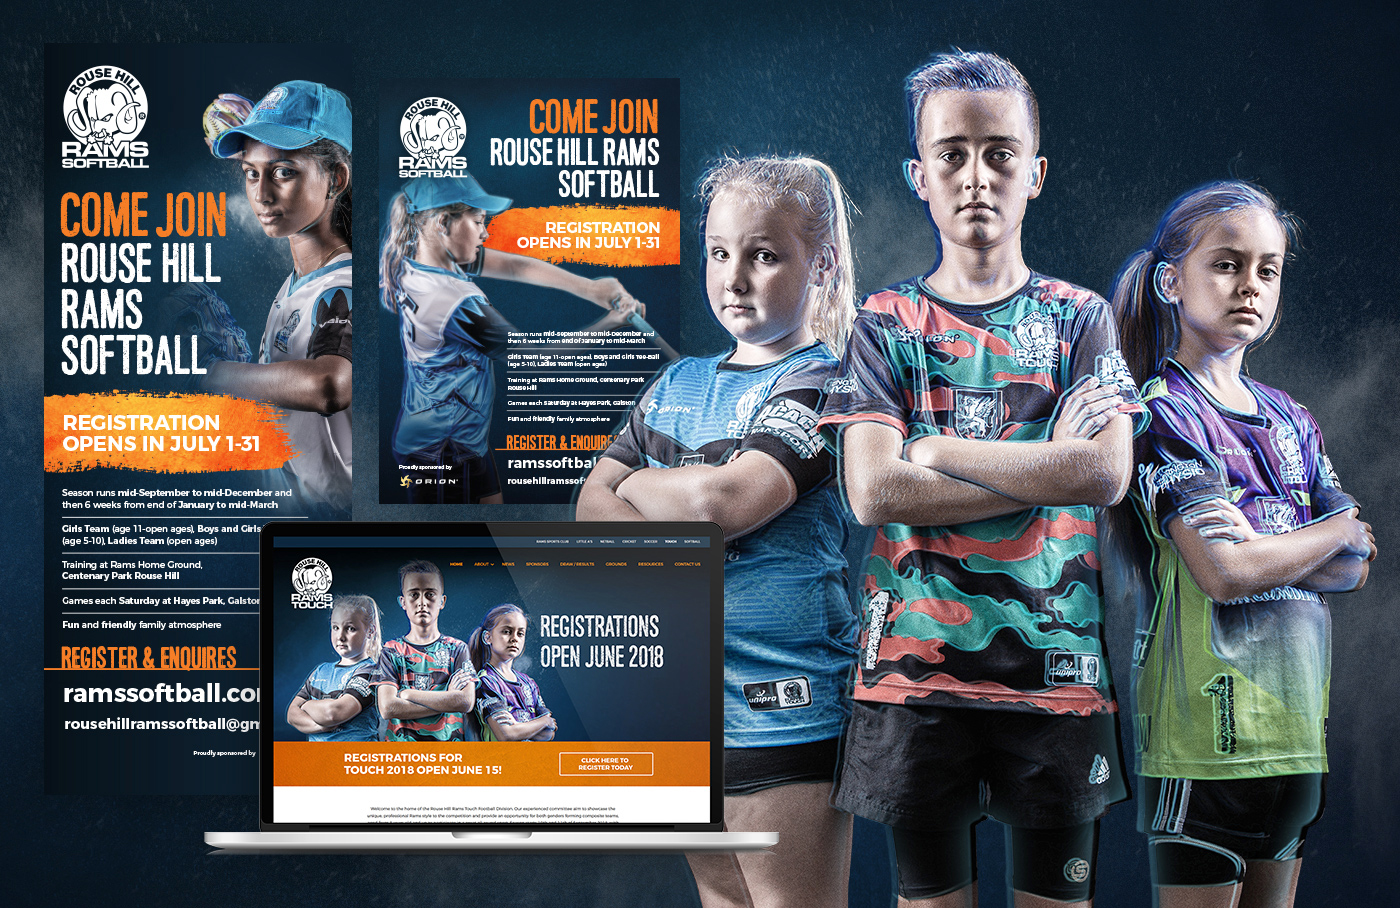 Hot off the press May - Rouse Hill Rams website